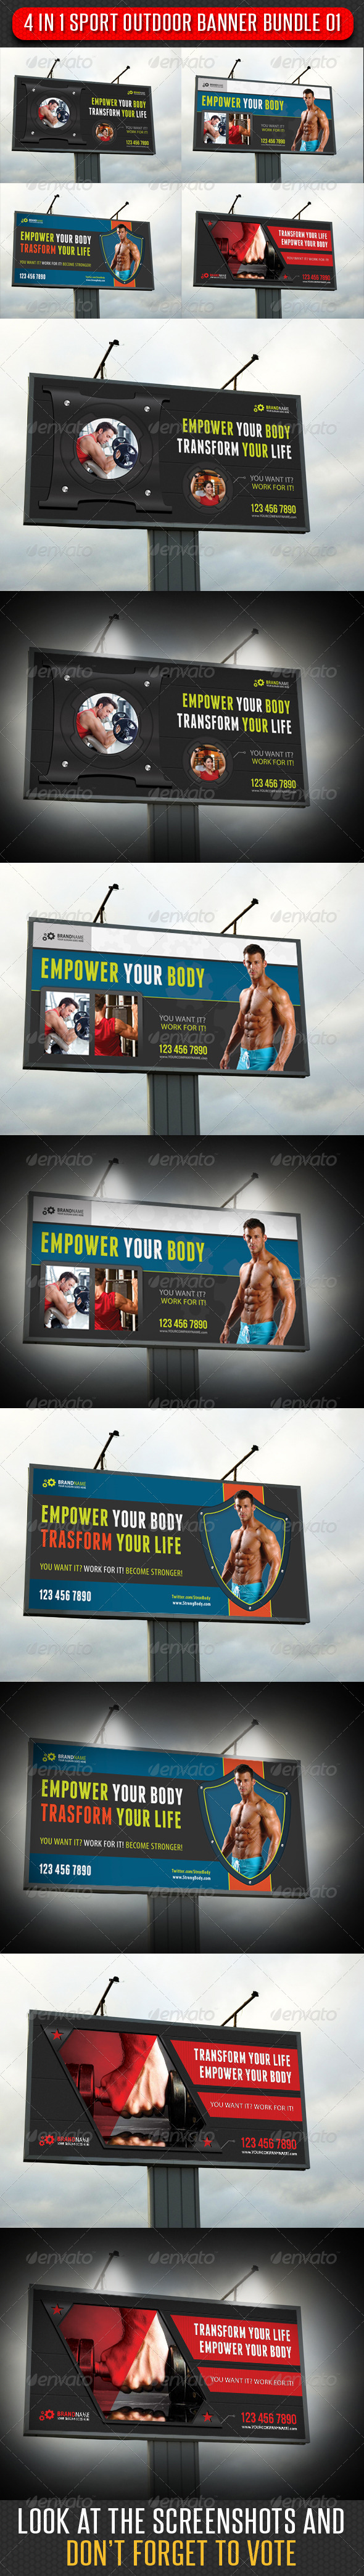 4 in 1 Sport Outdoor Banner Bundle 01 - Signage Print Templates